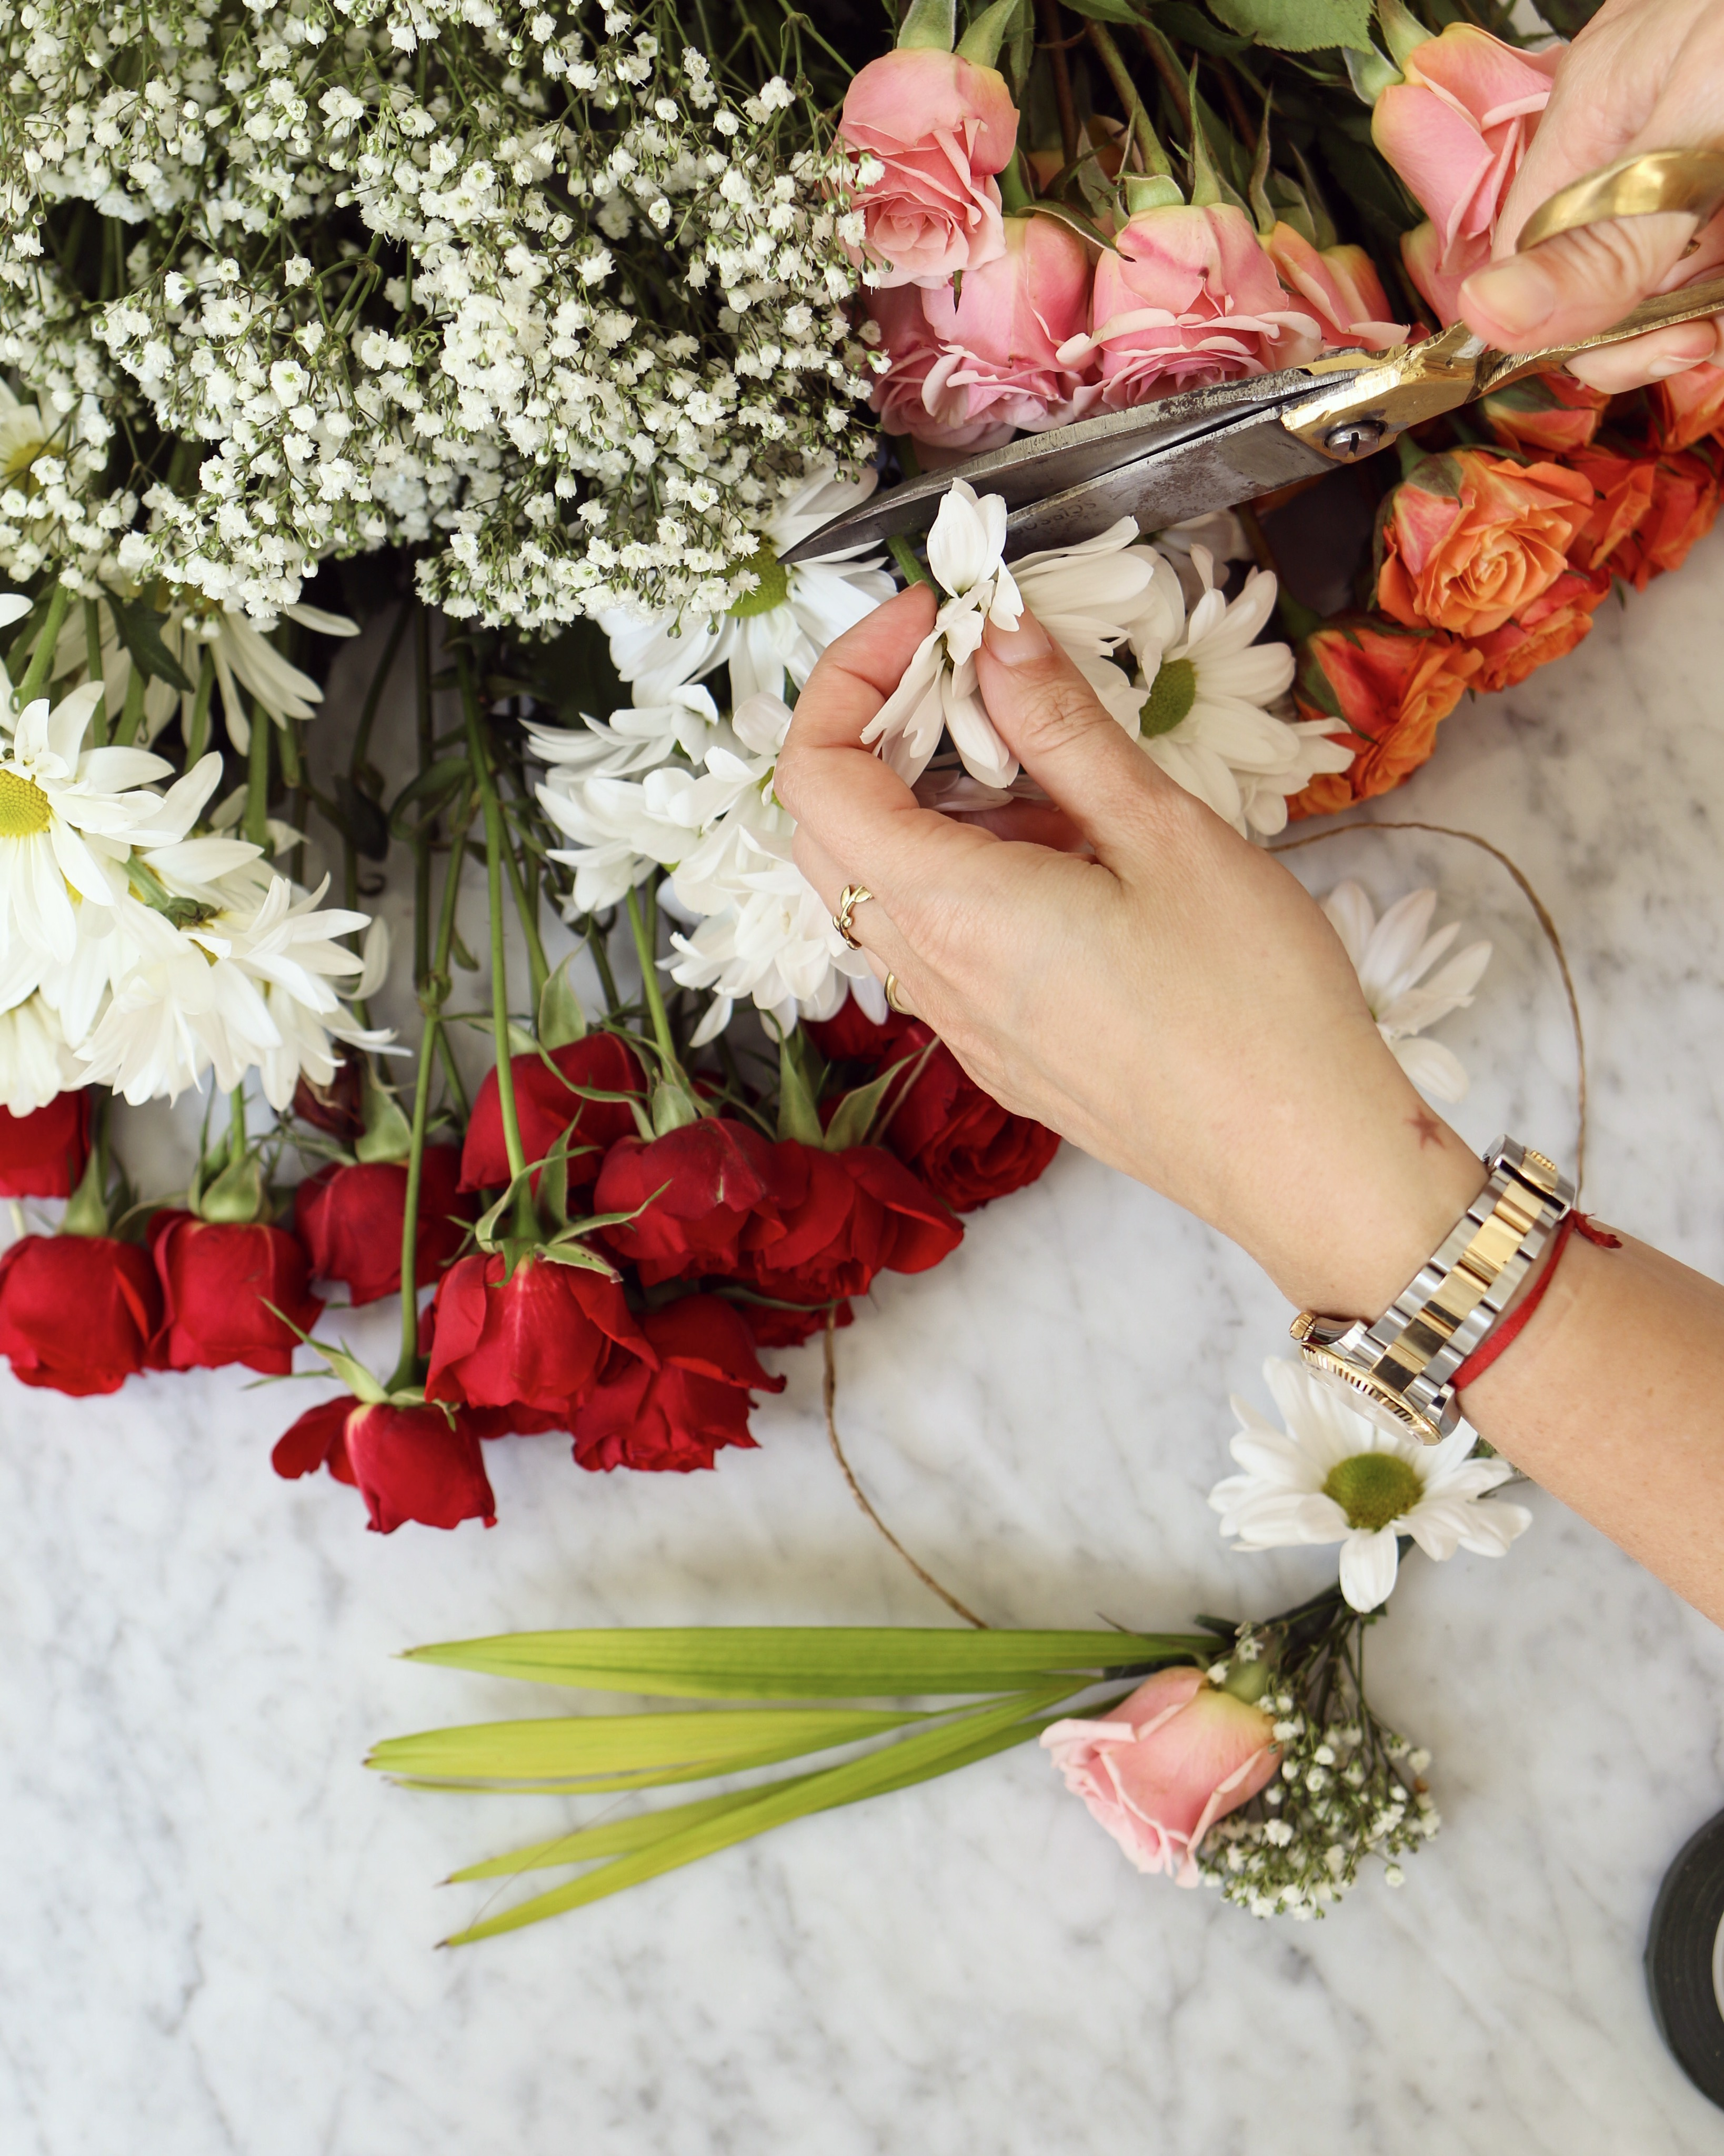 Beach House DIY: How To Make A Fresh Flower Crown